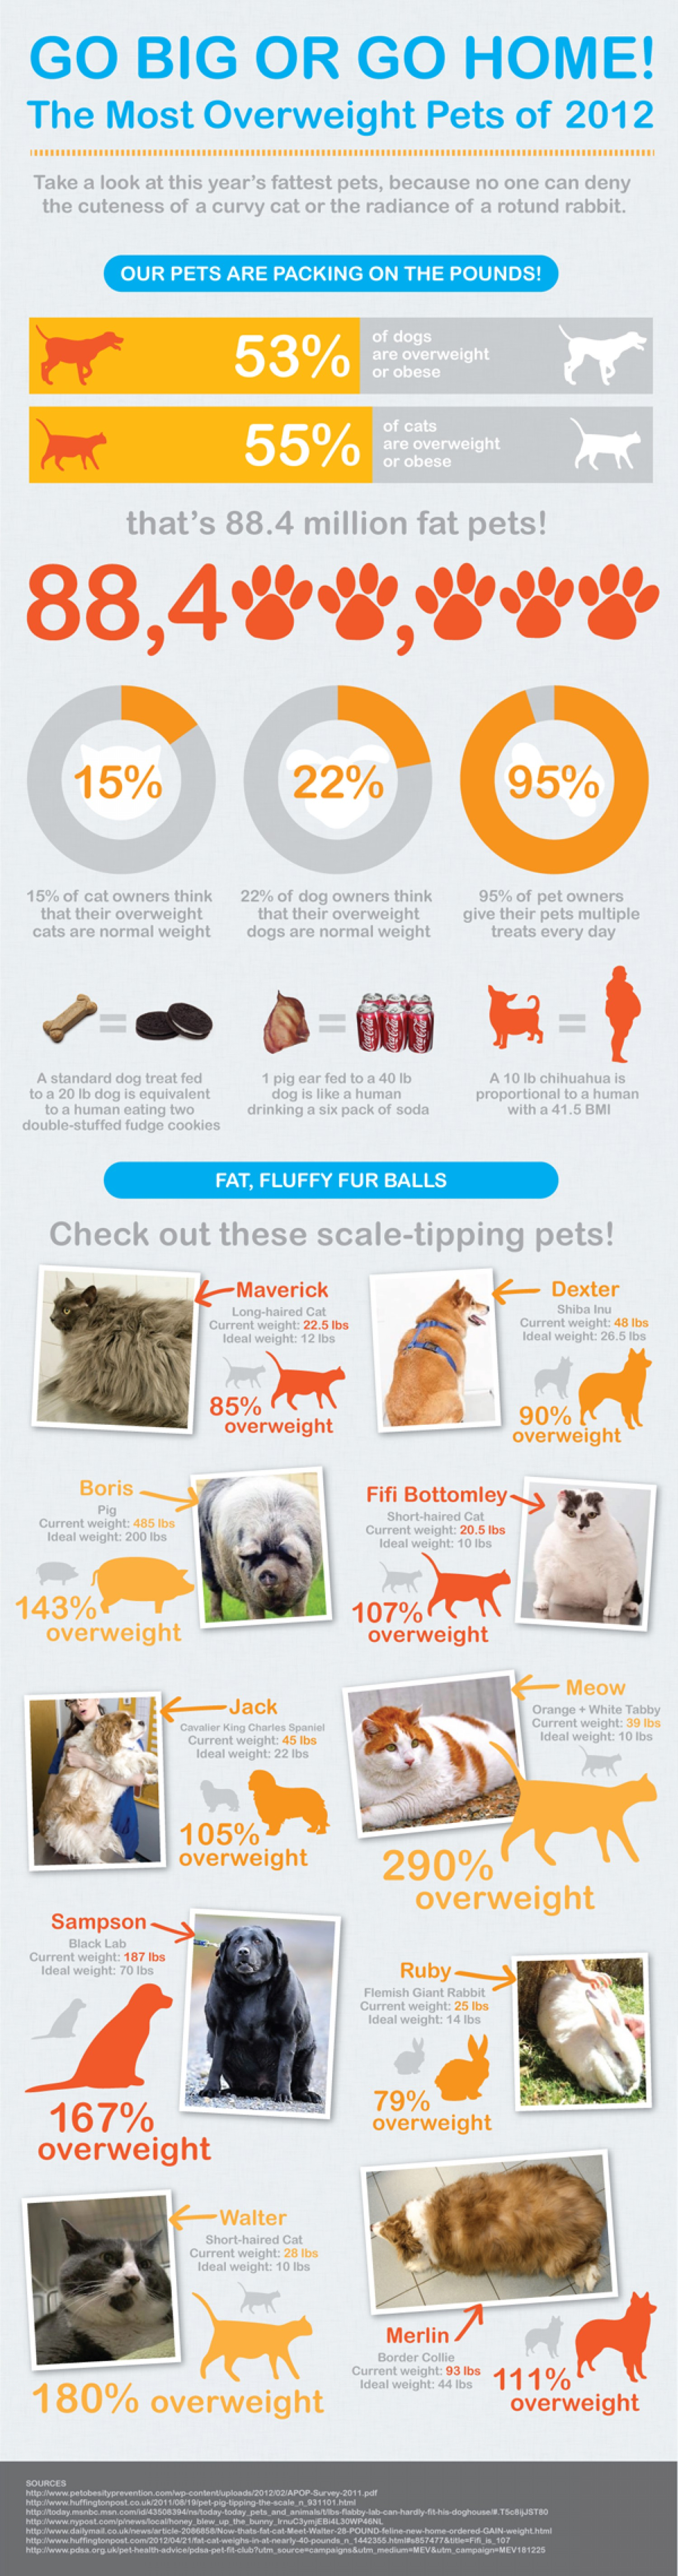 5. Pet Obesity is getting obesely ridiculous!